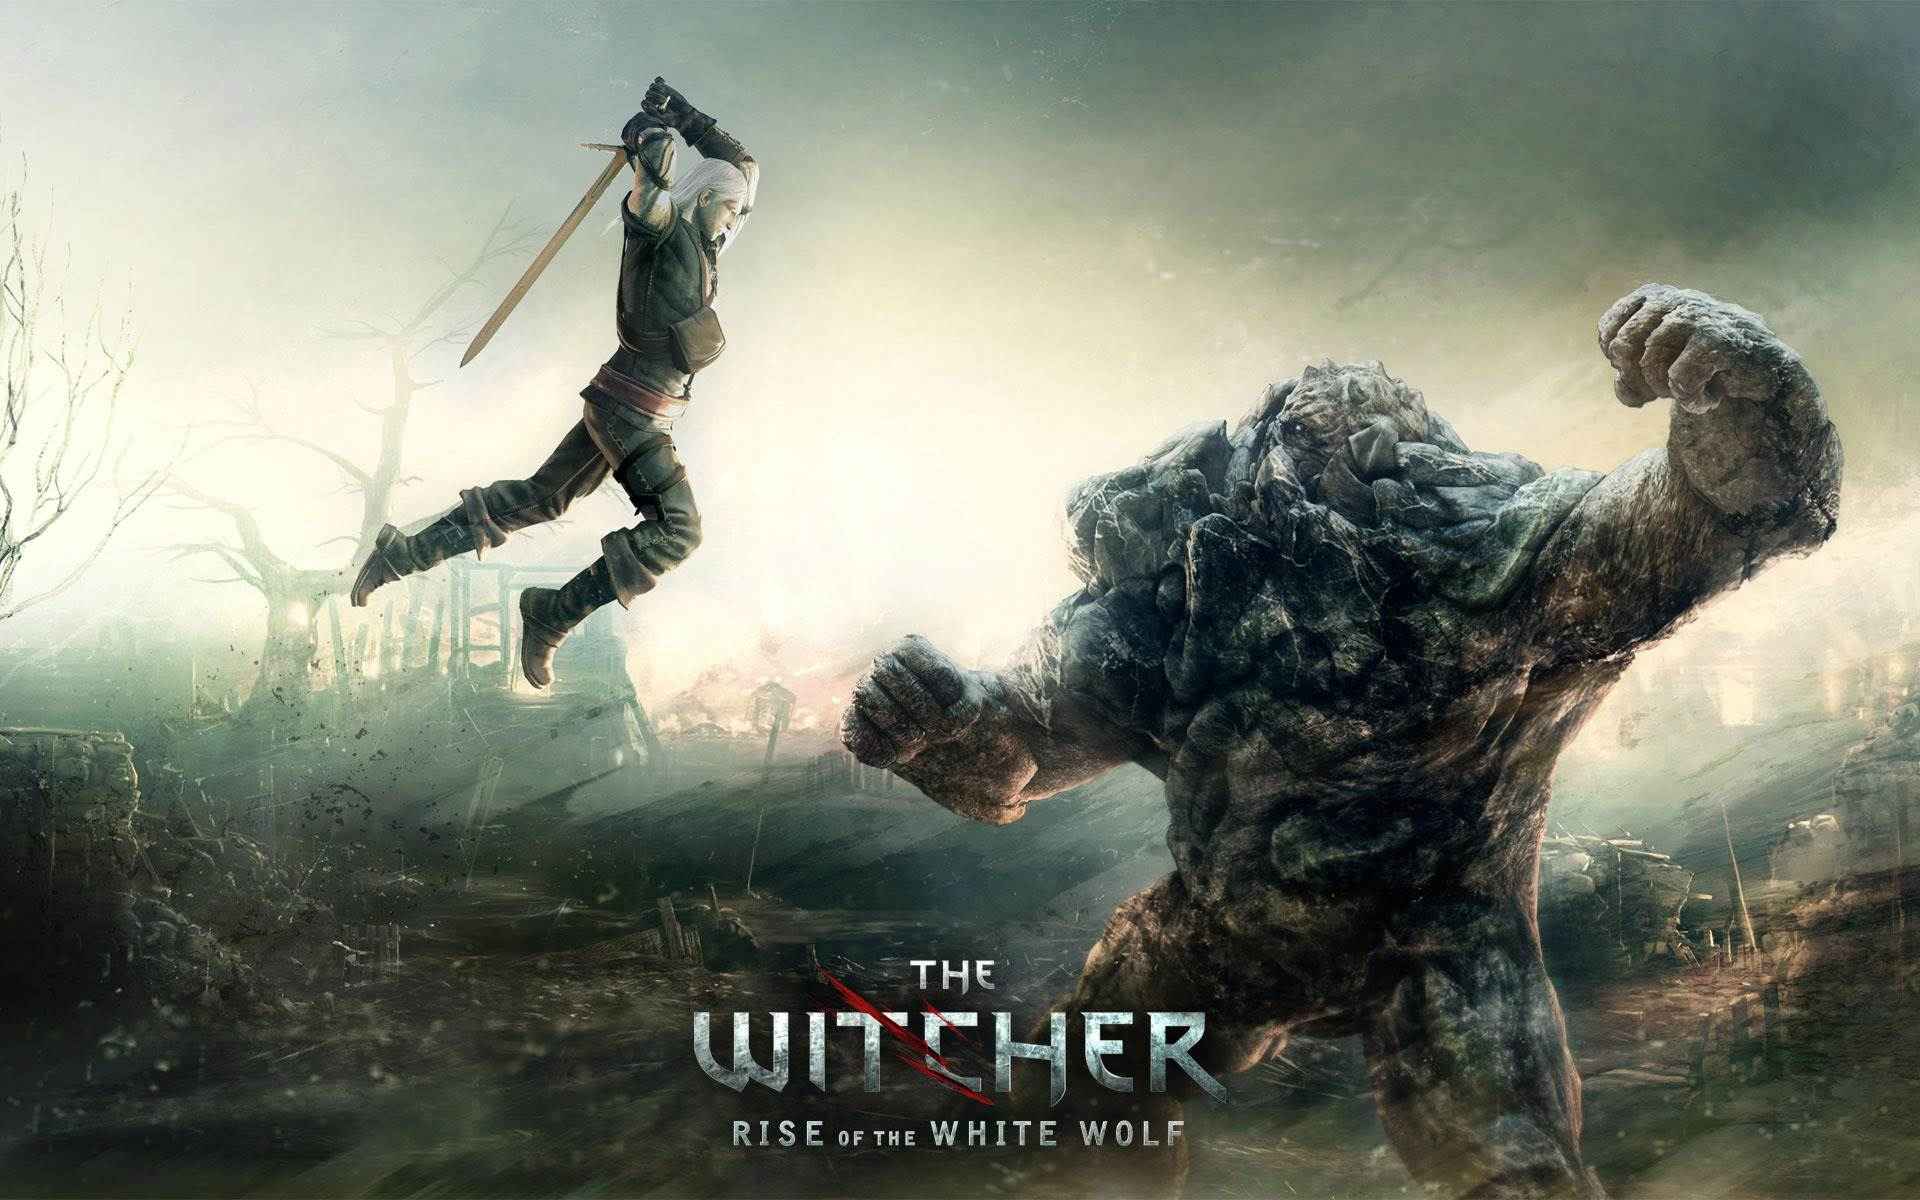 Witcher 3 Wallpaper (70 Wallpapers)